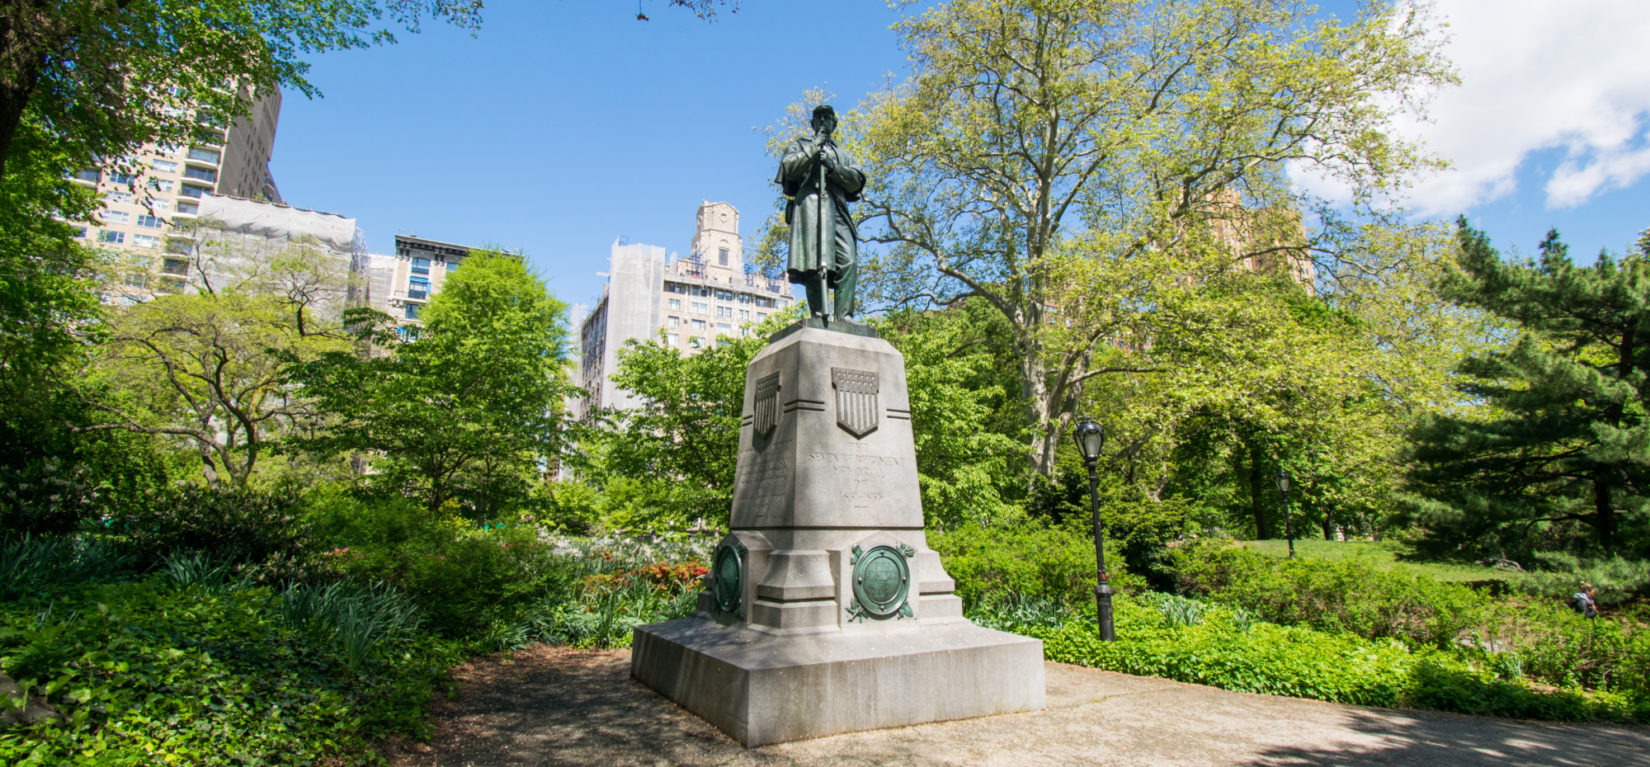 A vew of the 7th Regiment Memorial amid the greenery of early spring